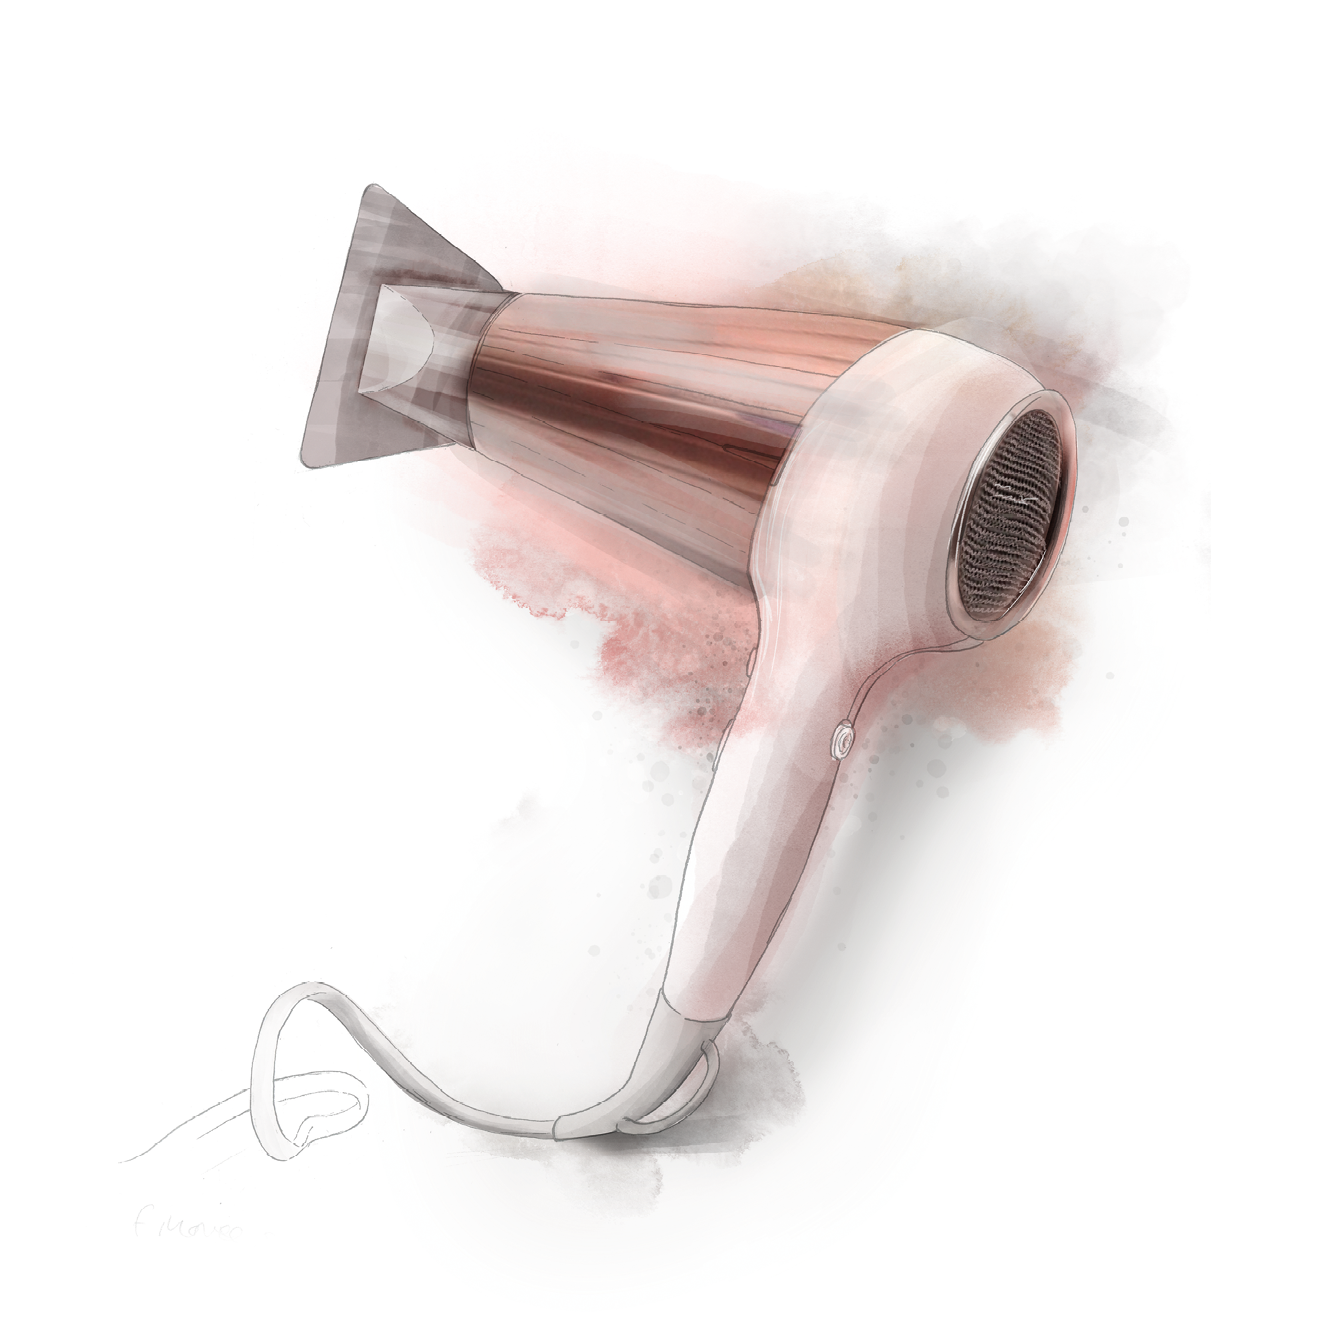 Hair-care - A series of hair-care paraphernalia illustrations for a beauty look book.